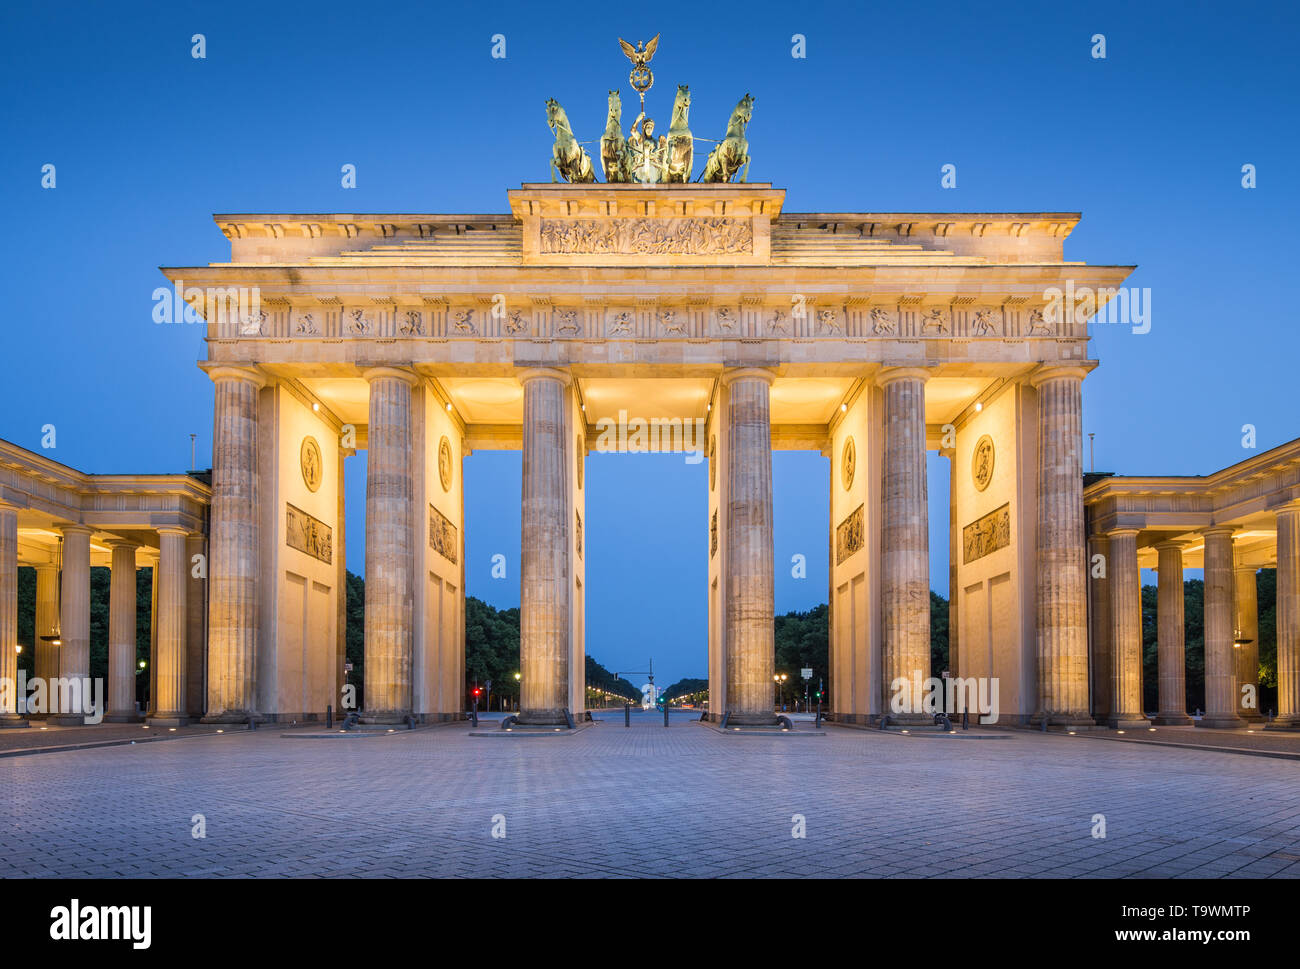 Panoramic view of famous Brandenburger Tor (Brandenburg Gate), one of the best-known landmarks and national symbols of Germany, in twilight during blu - Stock Image